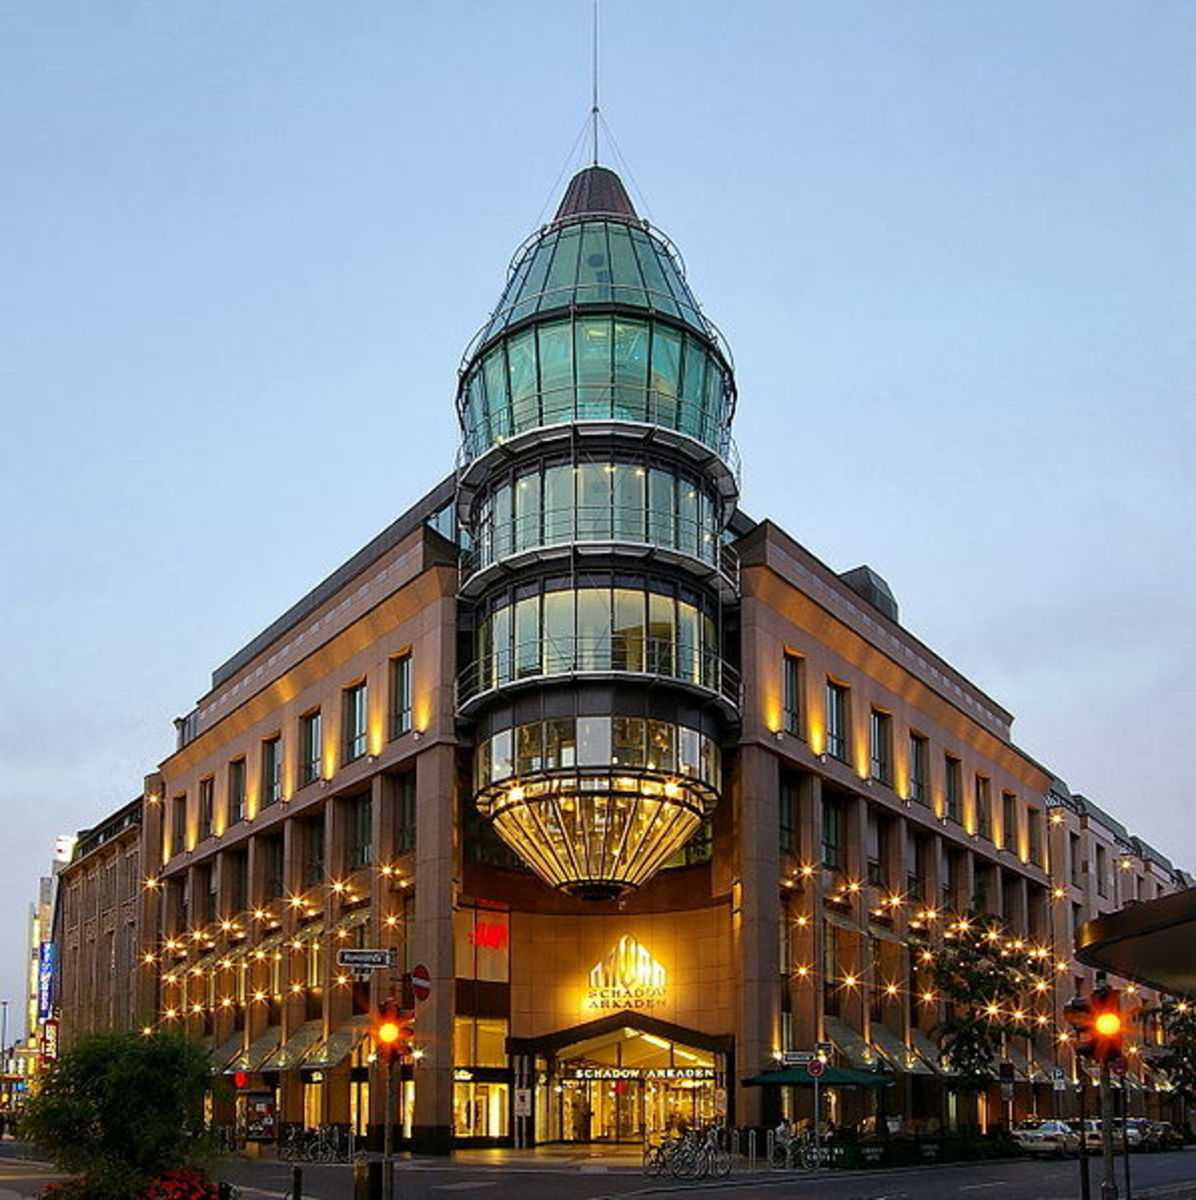 Dsseldorf Schadow Arkaden shopping mall